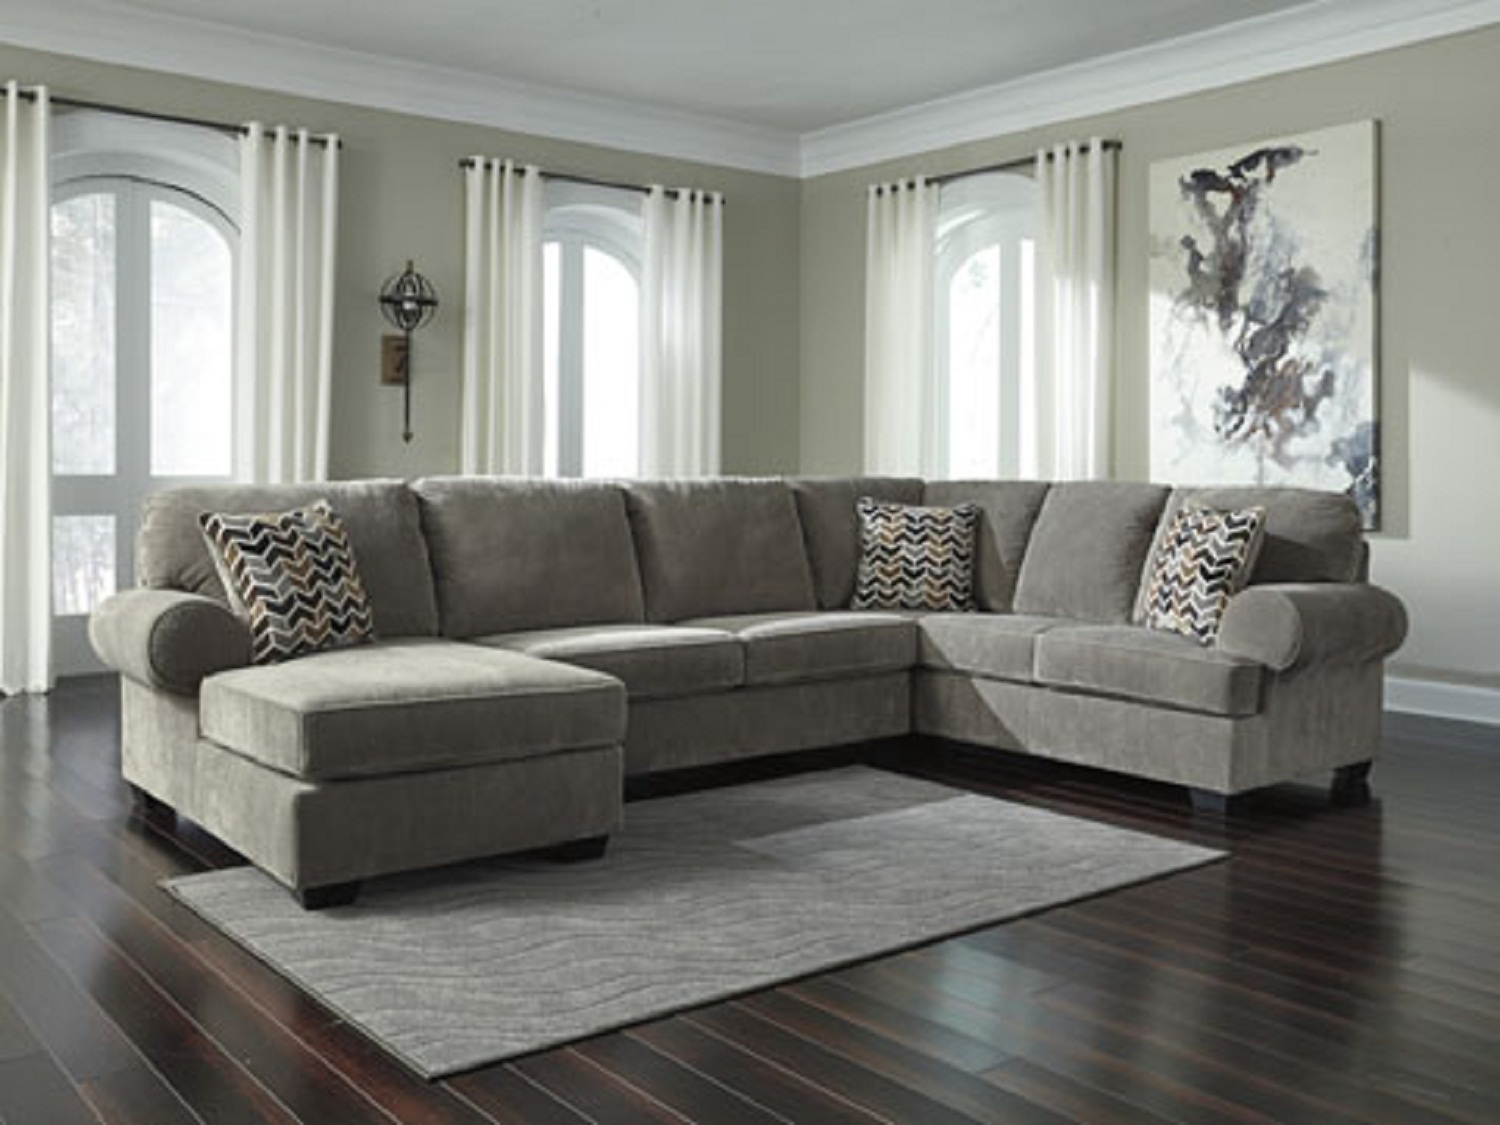 Jinllingsly, 72502, Sectionals by Midha Furniture to Brampton, Mississauga, Etobicoke, Toronto, Scraborough, Caledon, Oakville, Markham, Ajax, Pickering, Oshawa, Richmondhill, Kitchener, Hamilton and GTA area